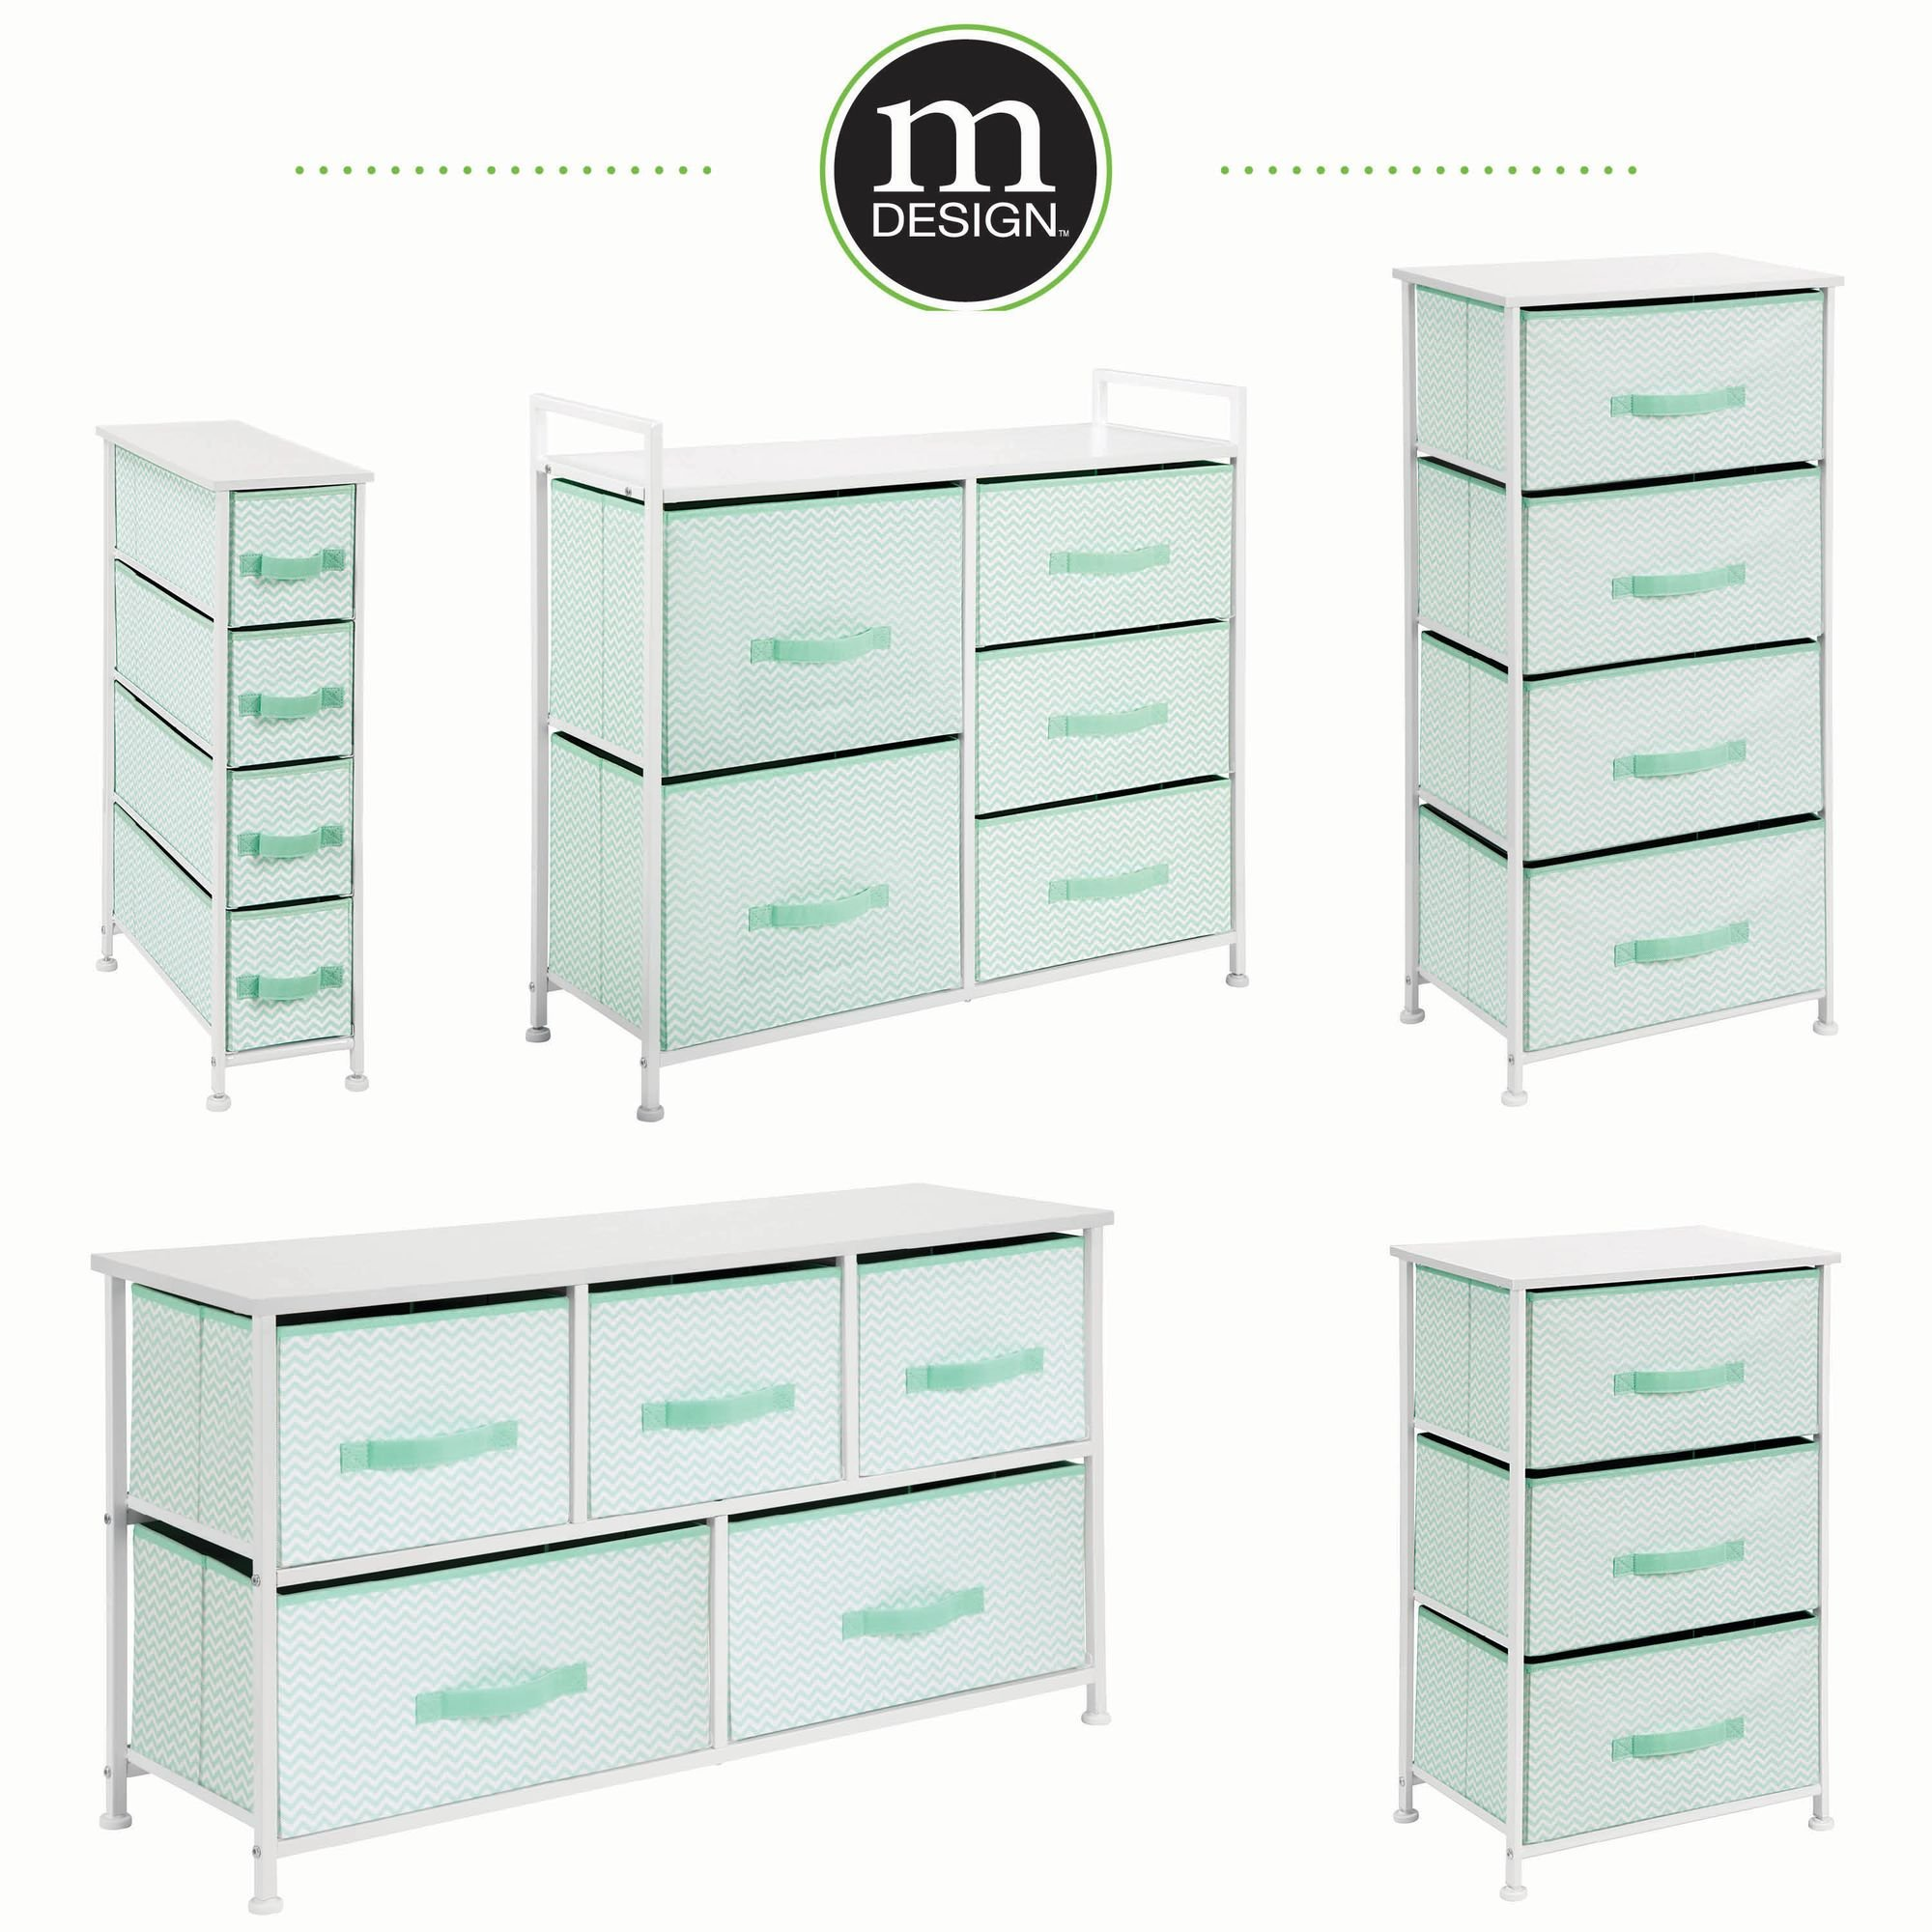 mDesign Vertical Dresser Storage Tower - Sturdy Steel Frame, Wood Top, Easy Pull Fabric Bins - Organizer Unit for Bedroom, Hallway, Entryway, Closets - Chevron Print - 3 Drawers, Mint/White by mDesign (Image #5)